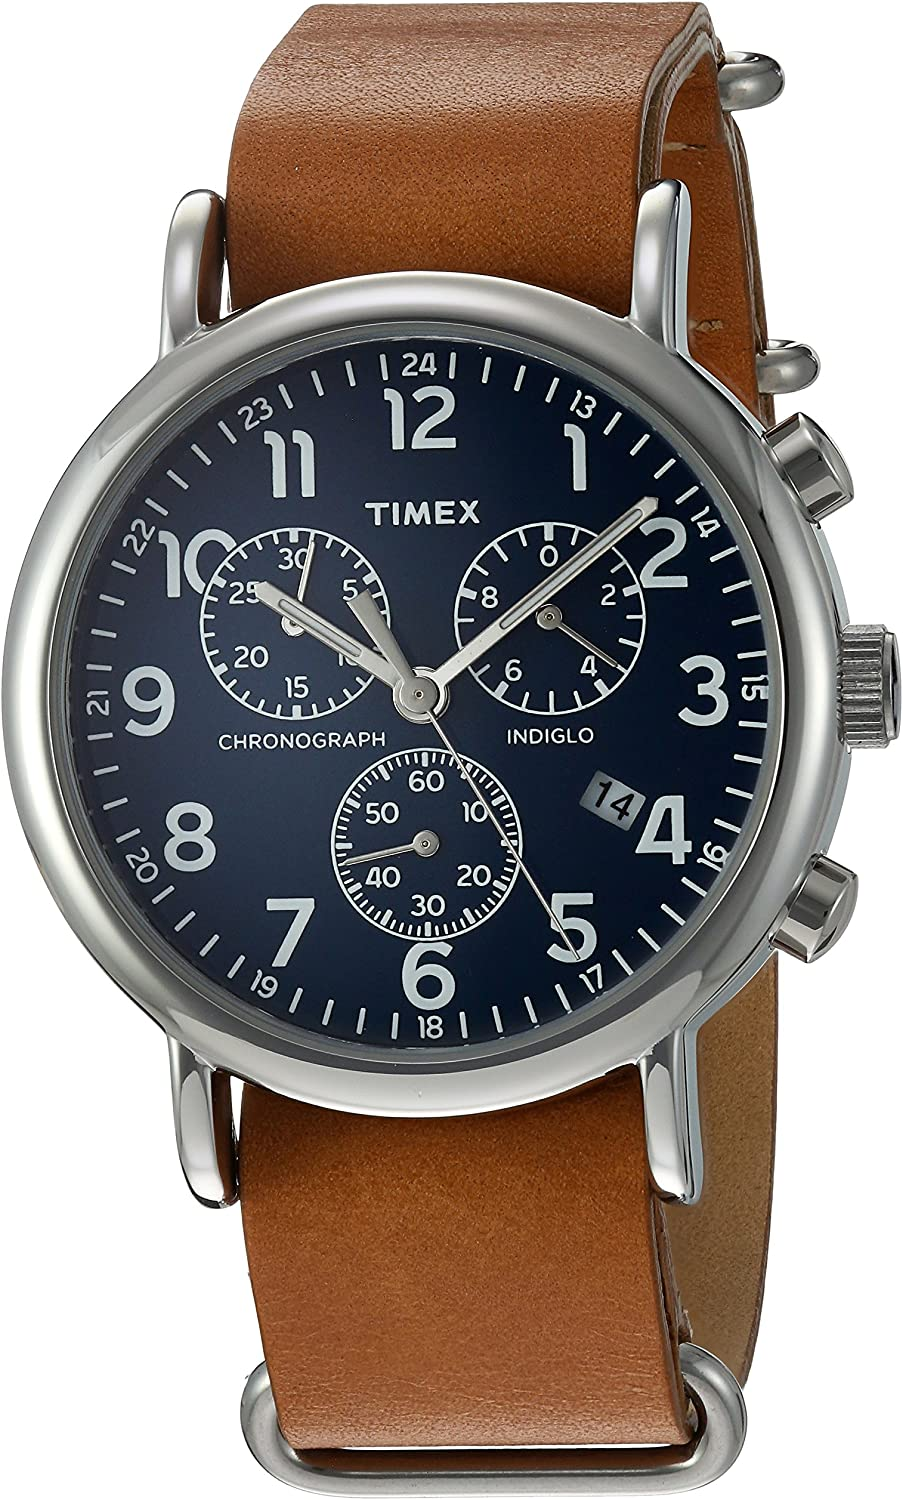 Timex Weekender Chronograph 40mm Watch Tan/Blue + Extra Strap